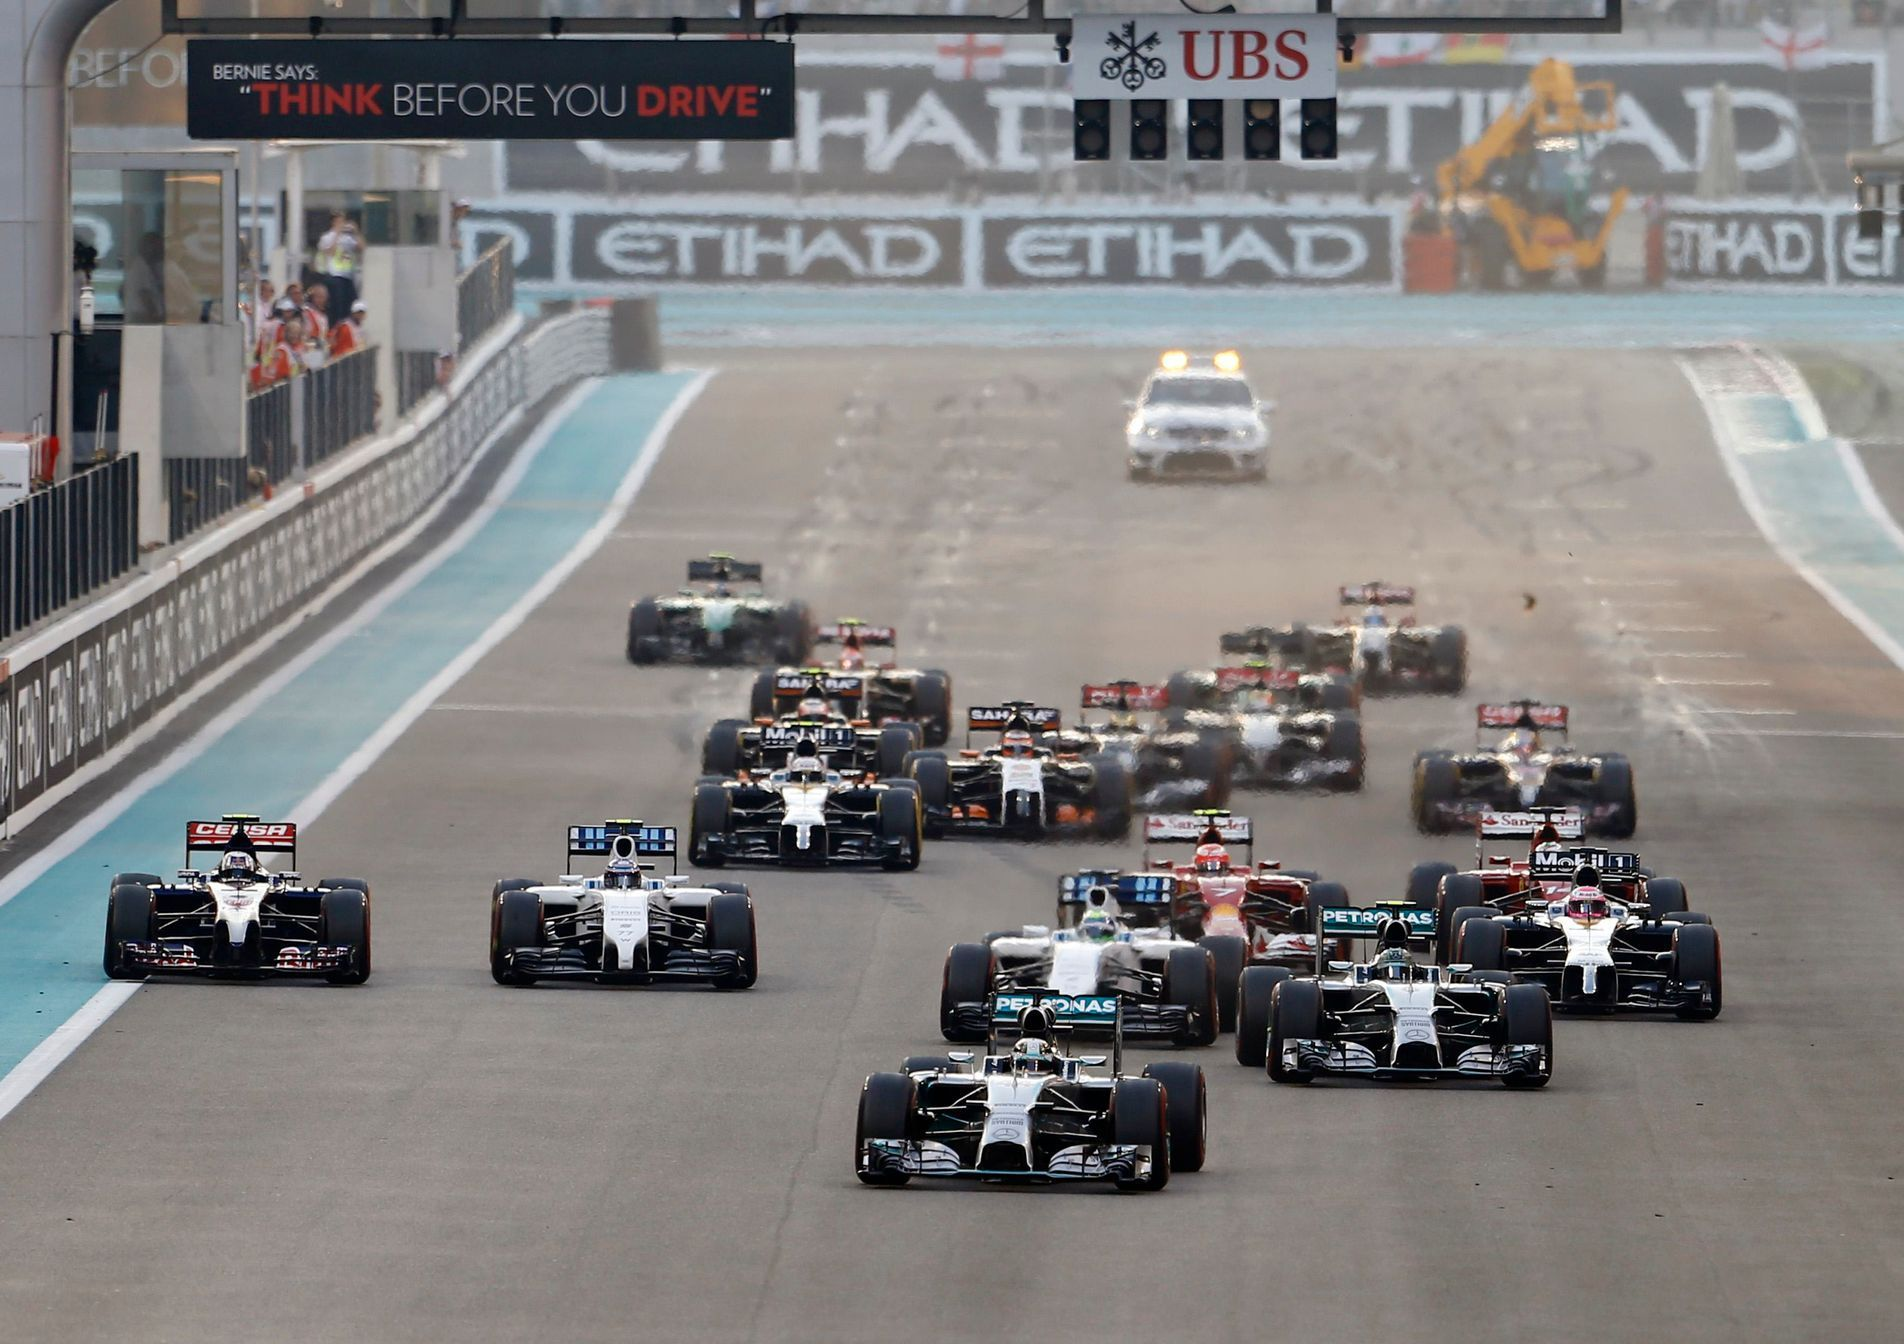 Mercedes Formula One driver Lewis Hamilton of Britain leads the pack as they approach the first turn during the Abu Dhabi F1 Grand Prix at the Yas Marina circuit in Abu Dhabi